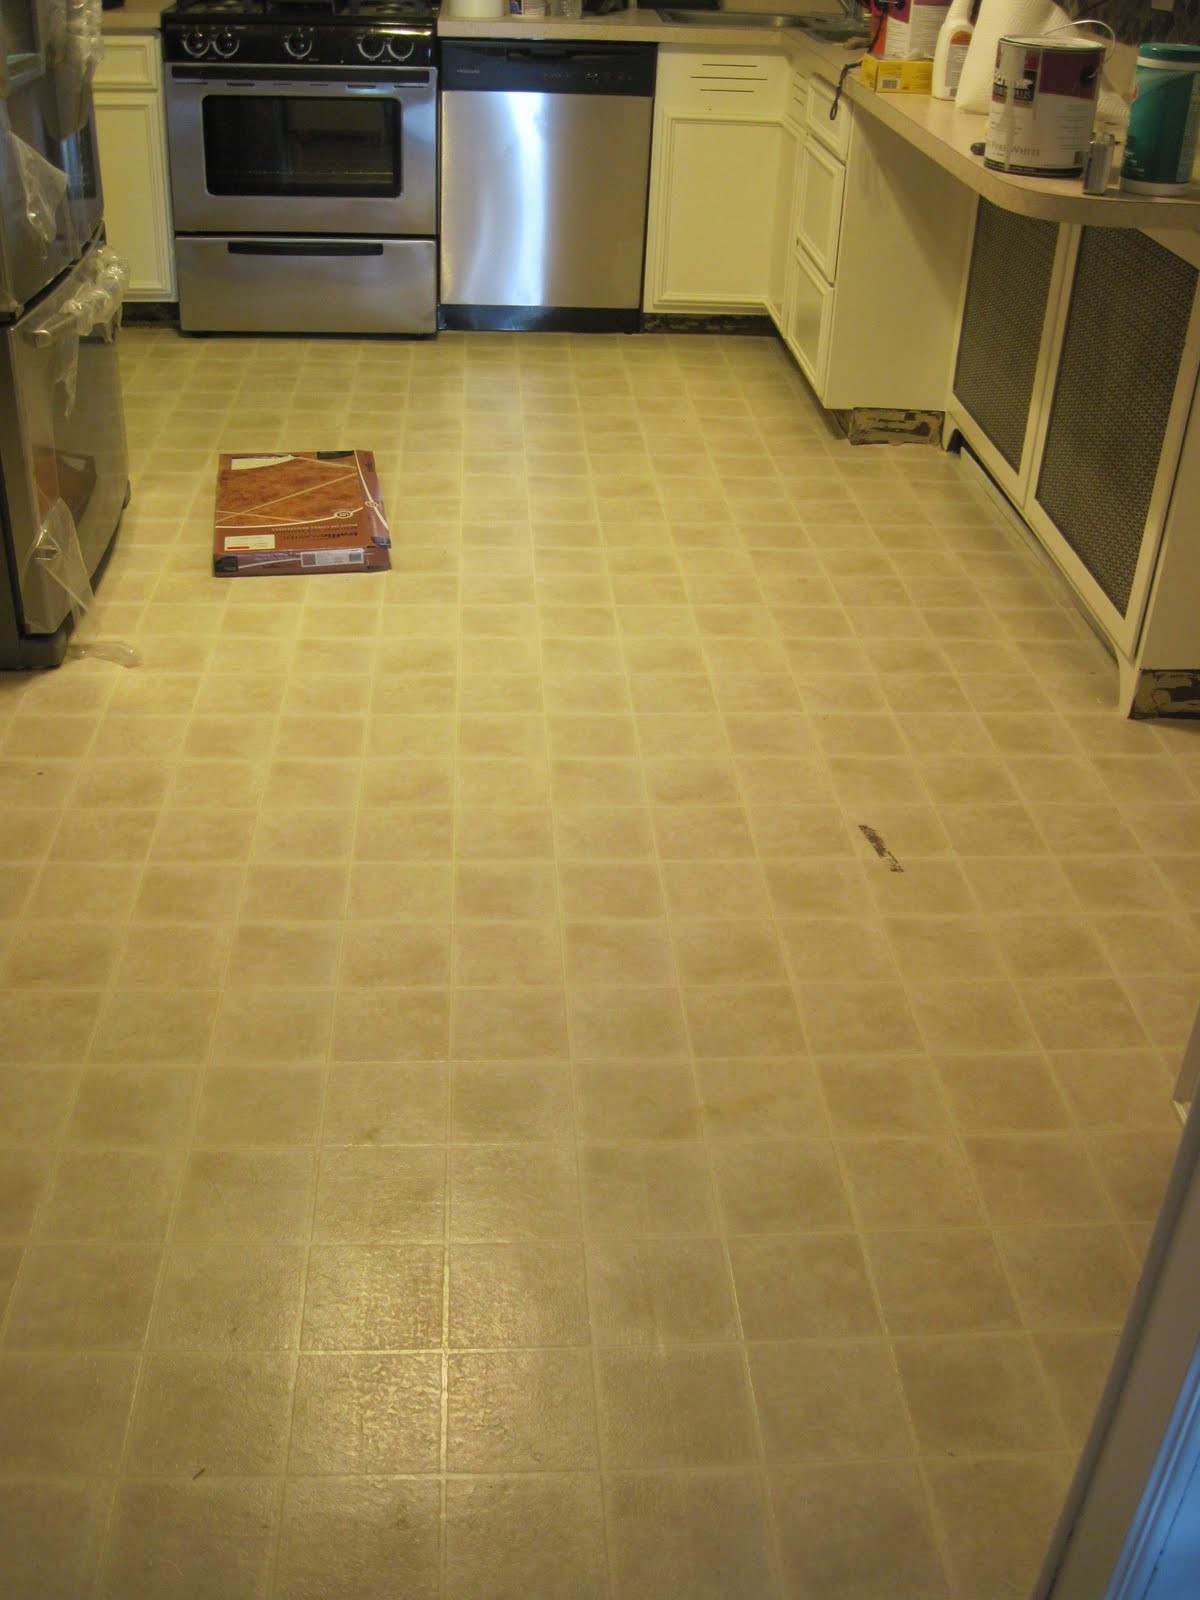 Kitchen Floor Vinyl Tiles Our Old Abode Kitchen Floor Groutable Vinyl Tile